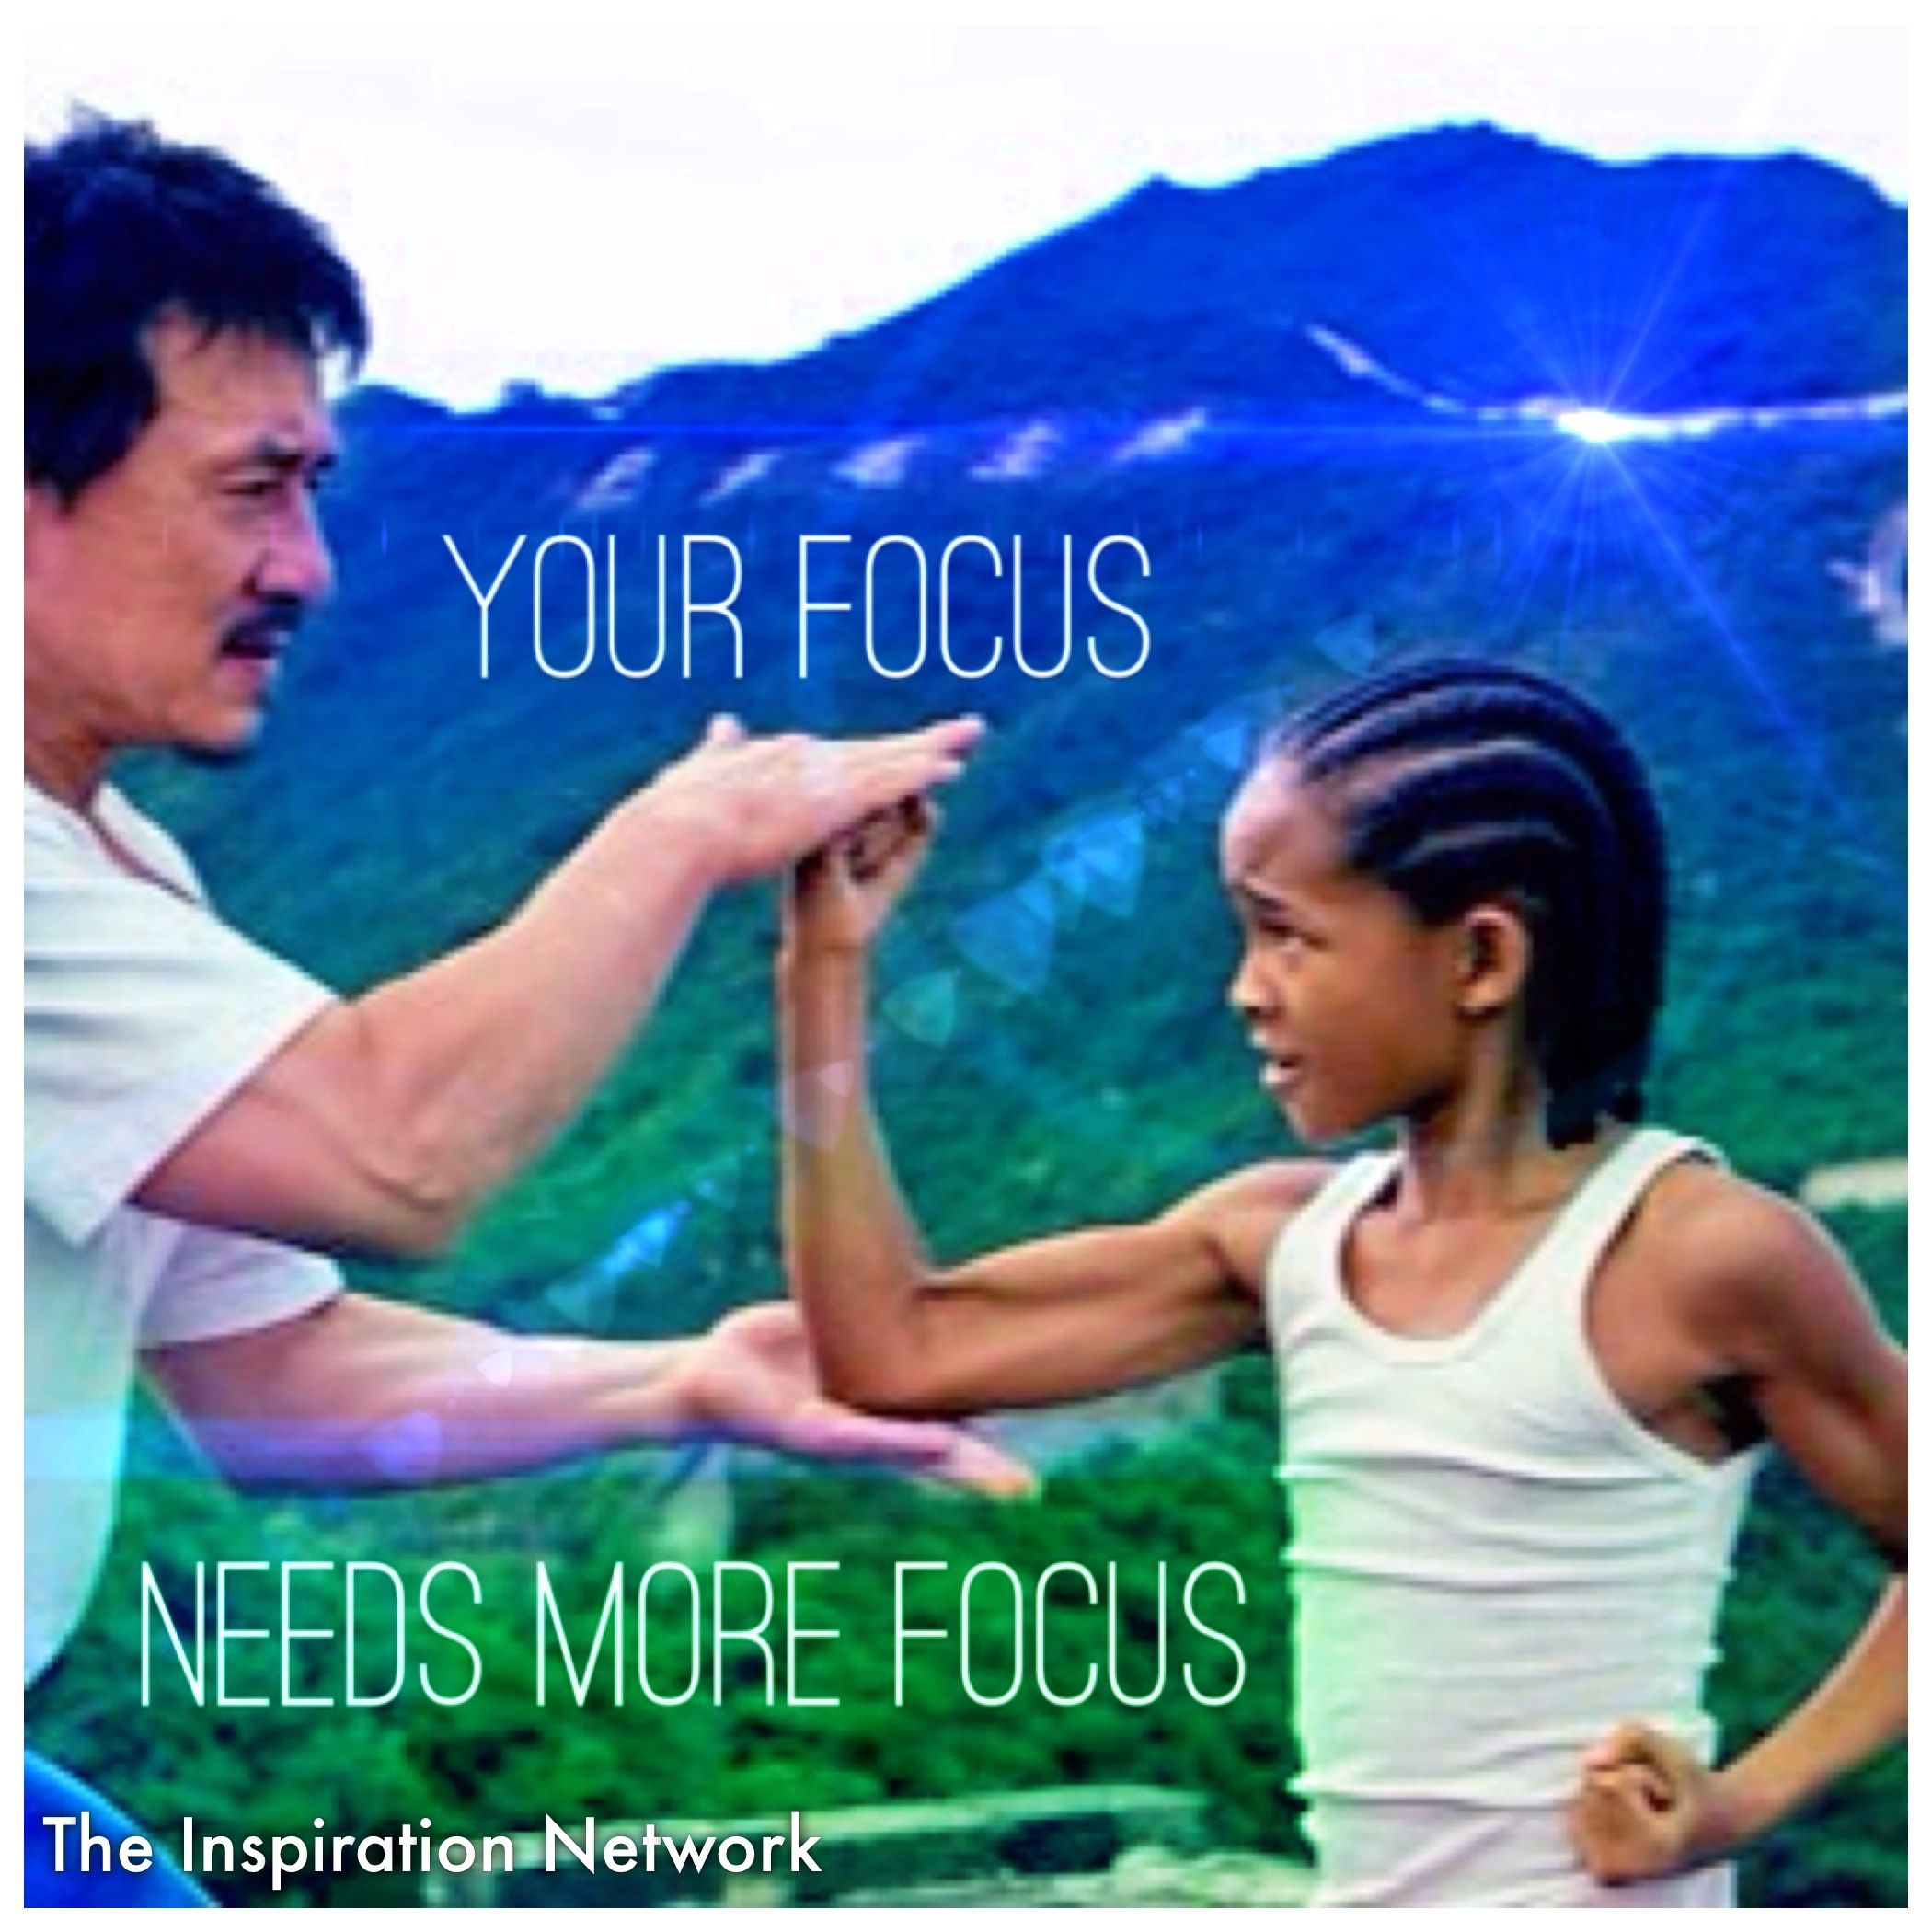 "Karate Kid Quotes Amazing Your Focus Needs More Focus"" ~The Karate Kid 2010 #quote  Yes I"